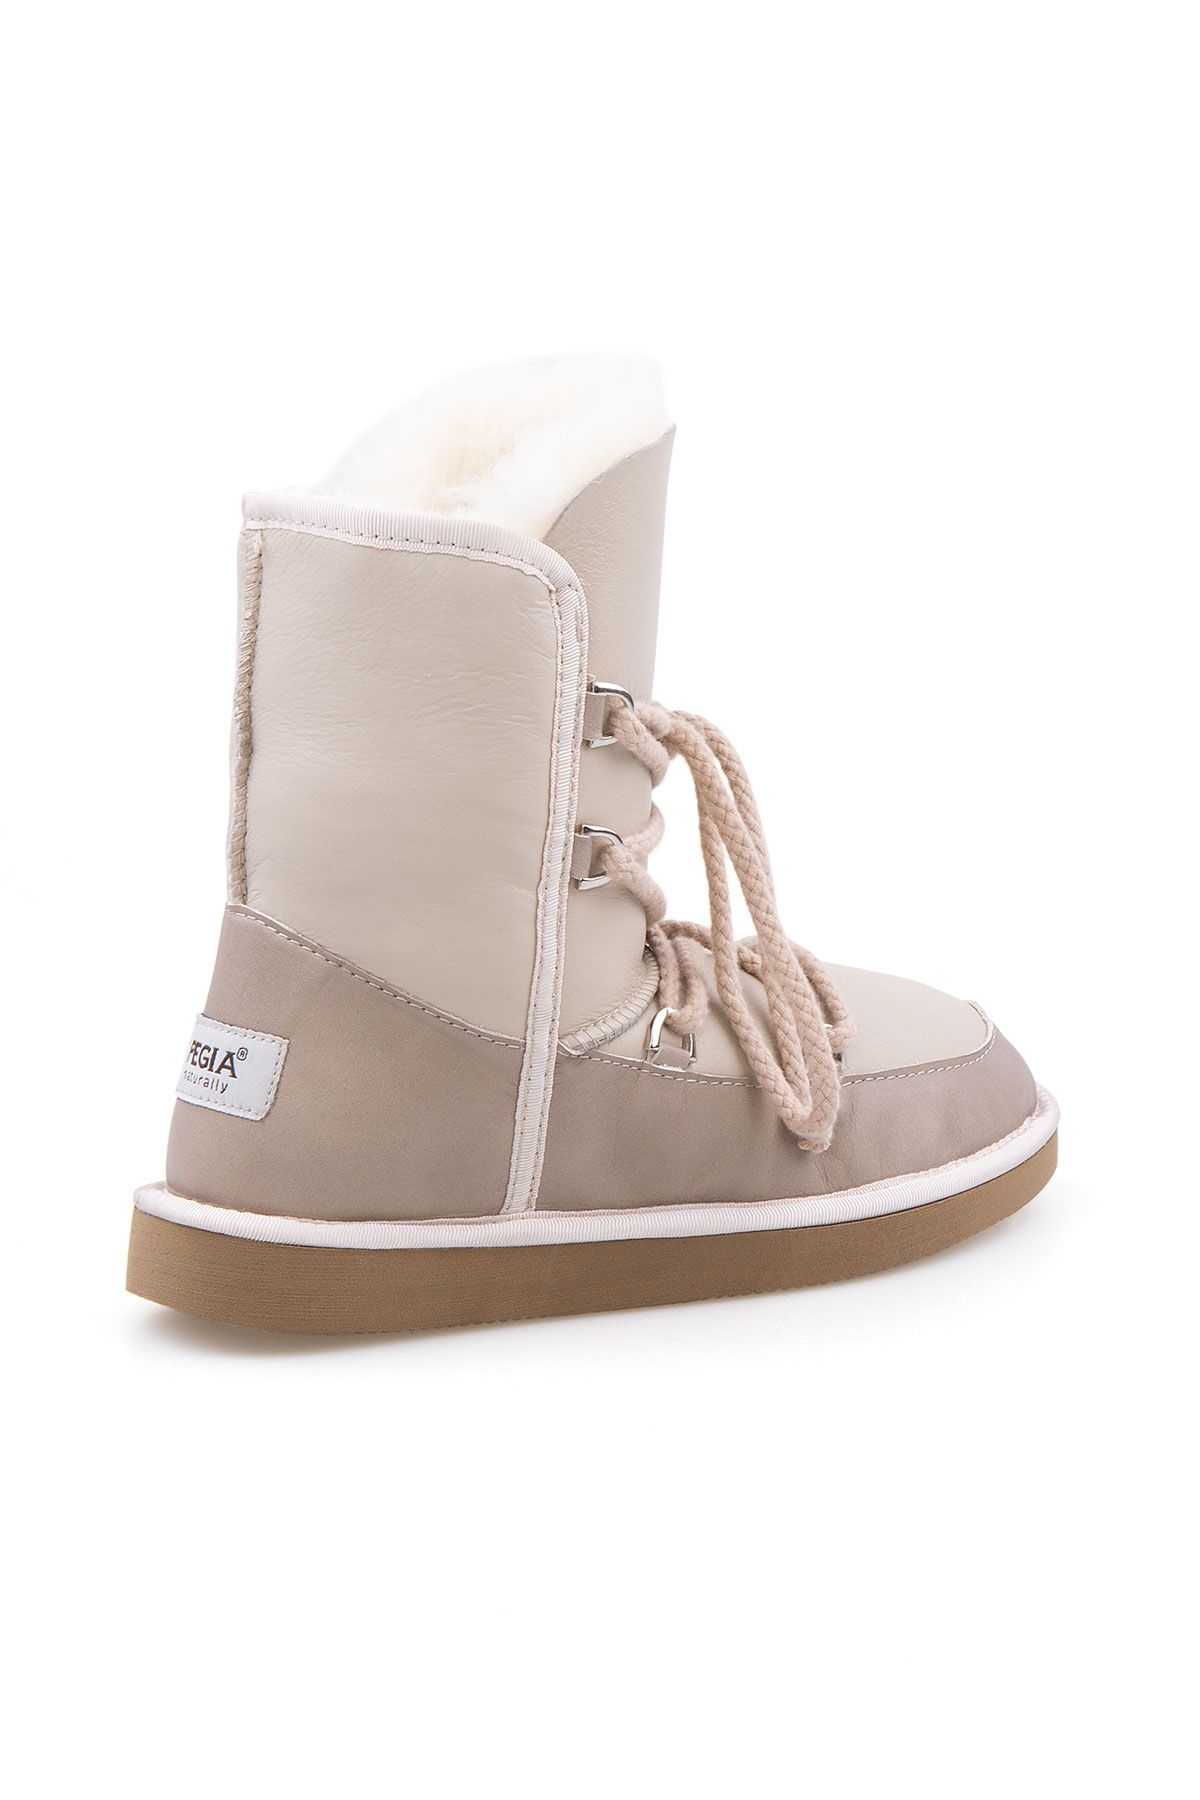 Pegia Shoelaced Genuine Leather & Shearling Women's Boots 191080 Beige